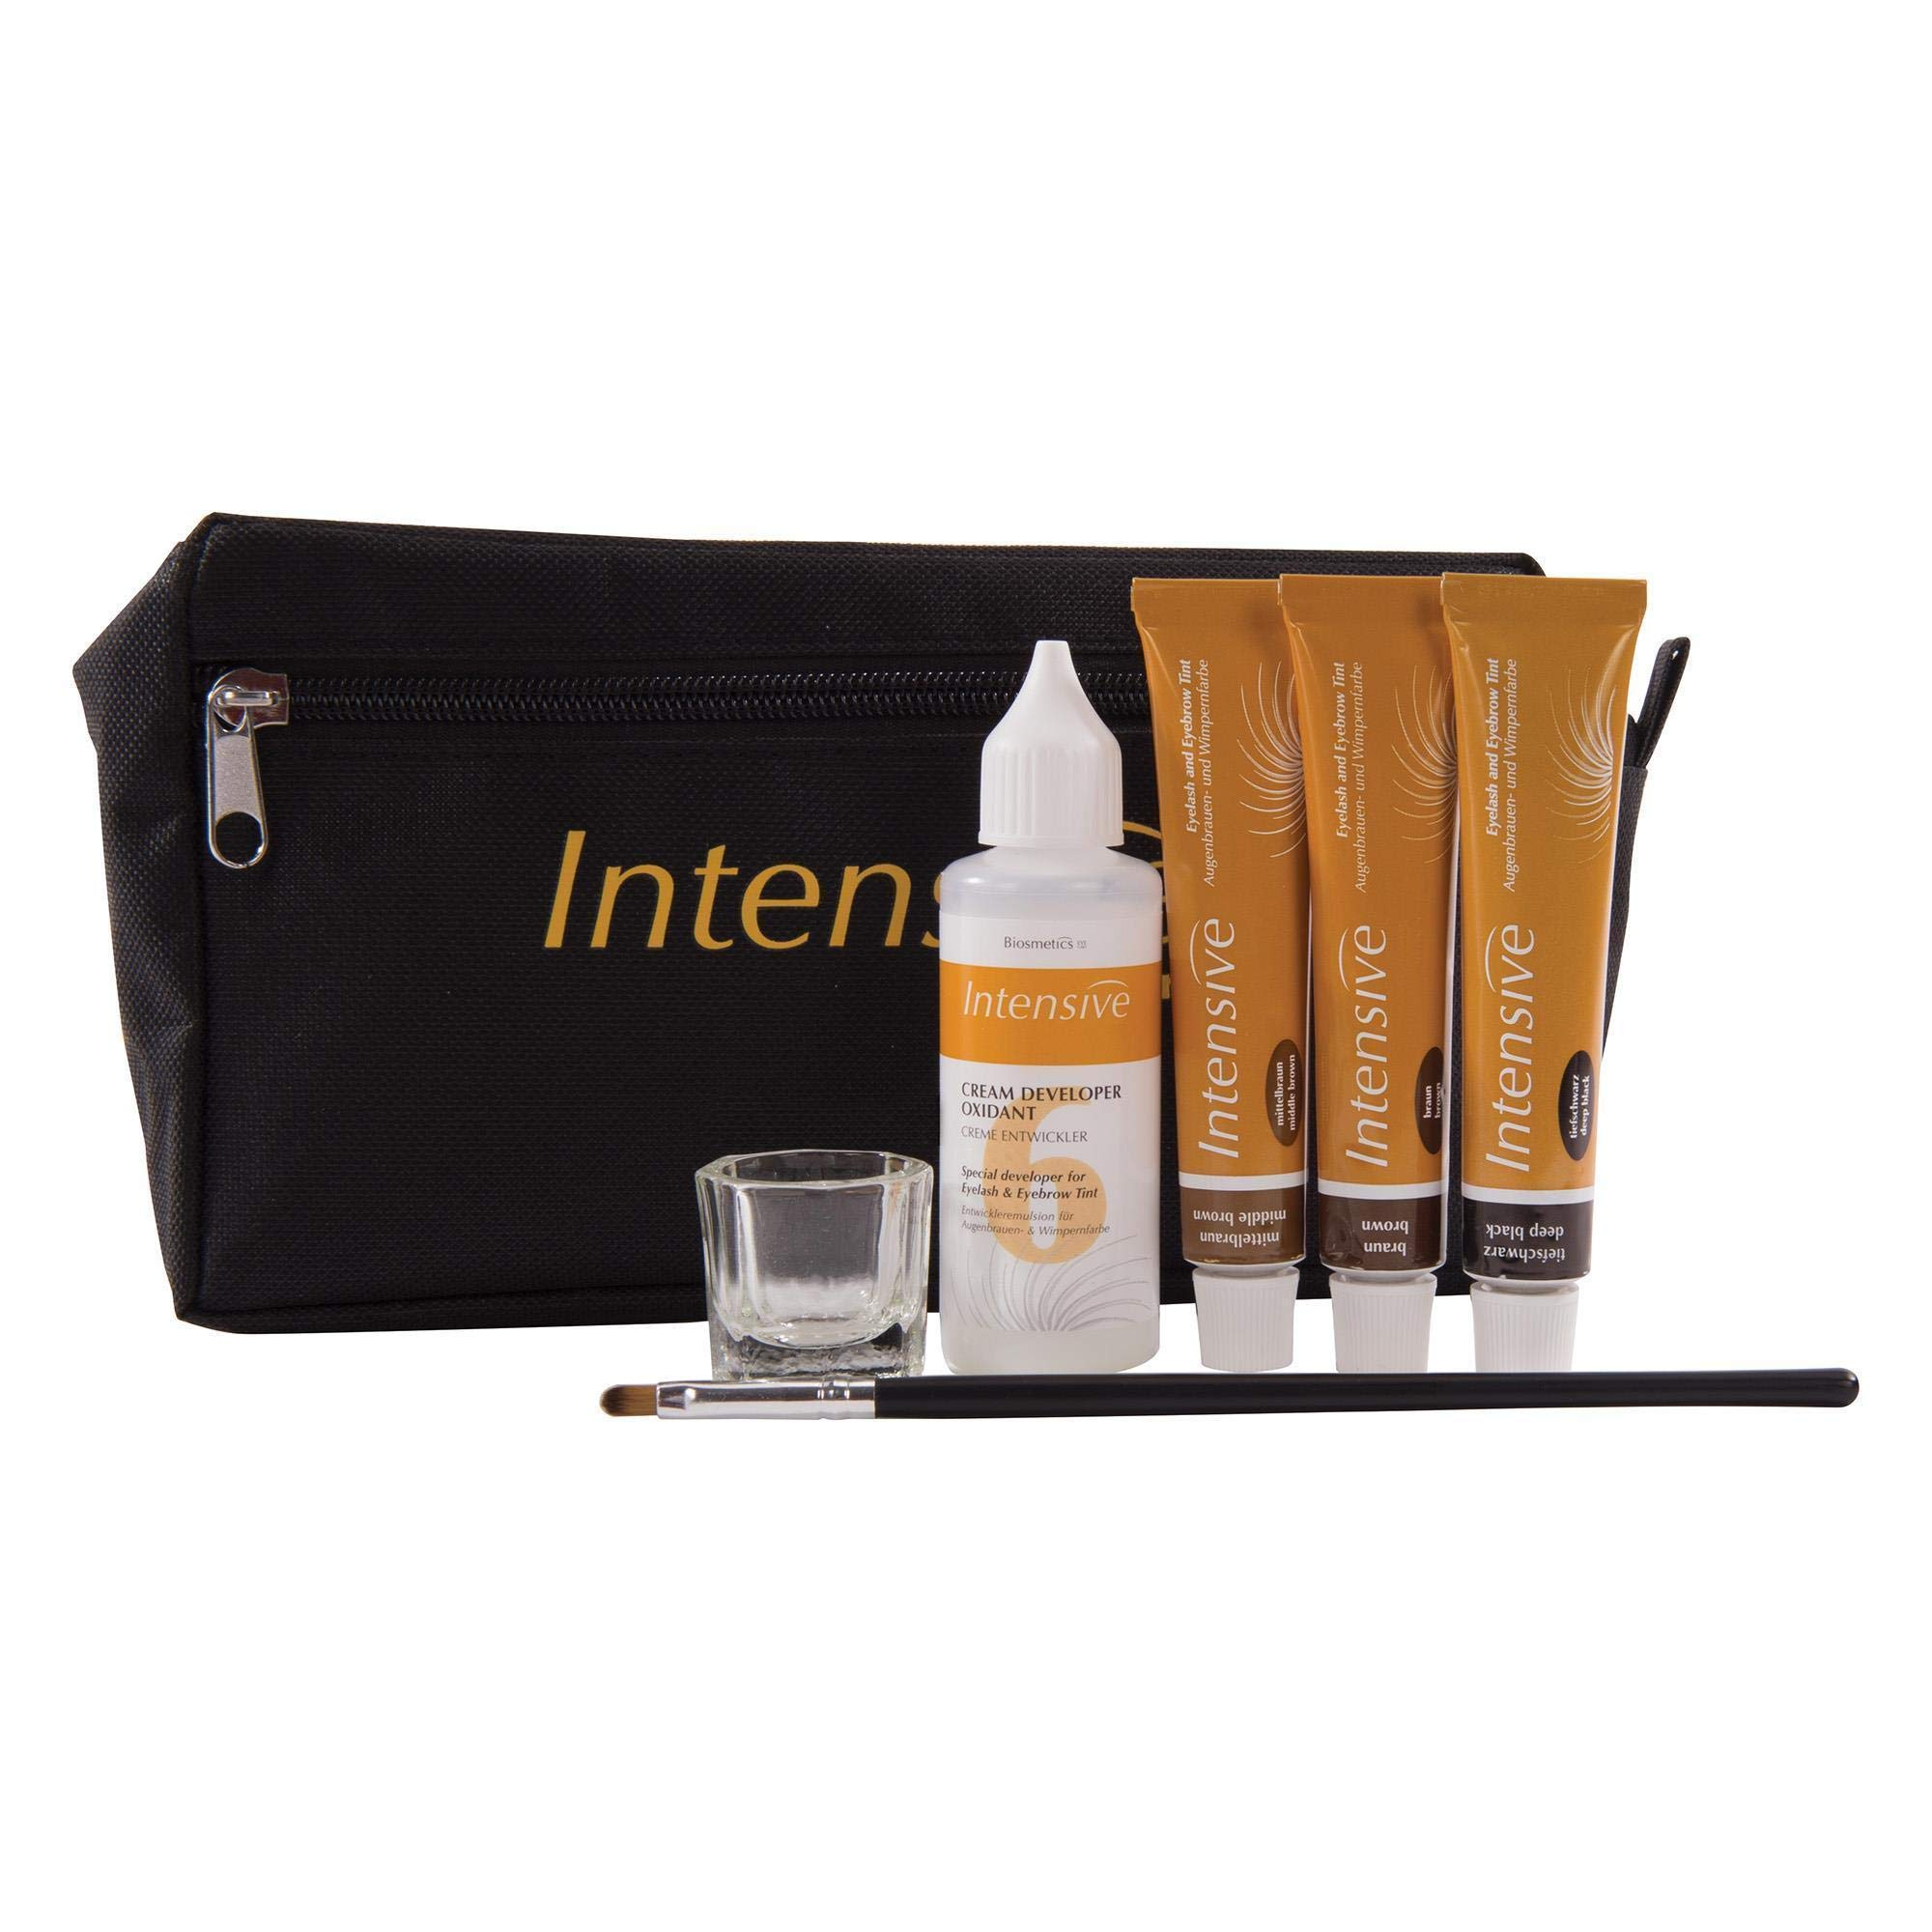 Intensive Lash & Brow Tinting Starter Kit | Trusted Professional Formula | Provides 90 Services by Intensive (Image #1)